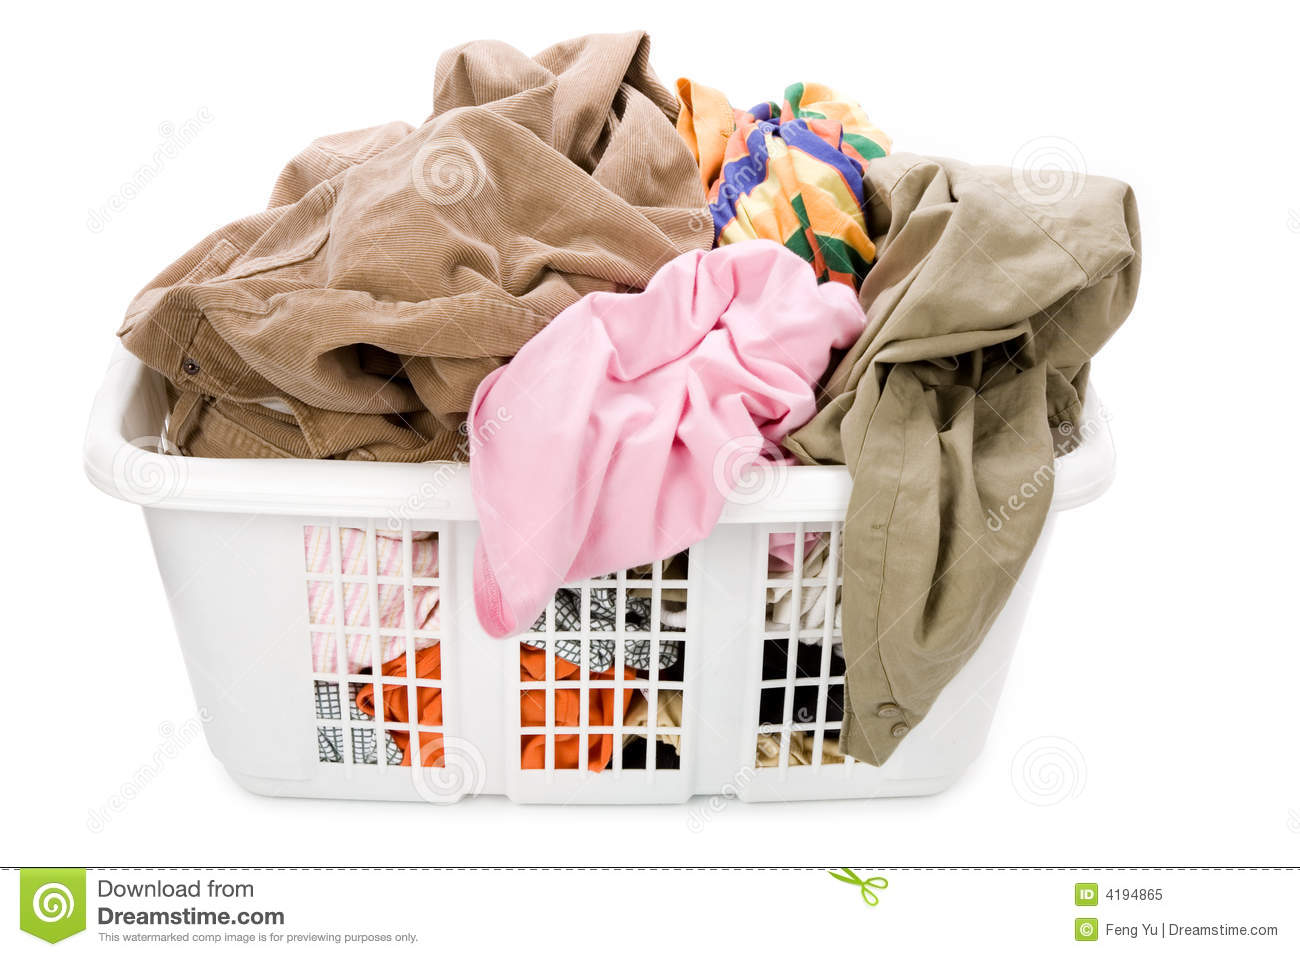 Dirty Laundry Baskets Laundry Basket And Dirty Clothing Royalty Free Stock Photo